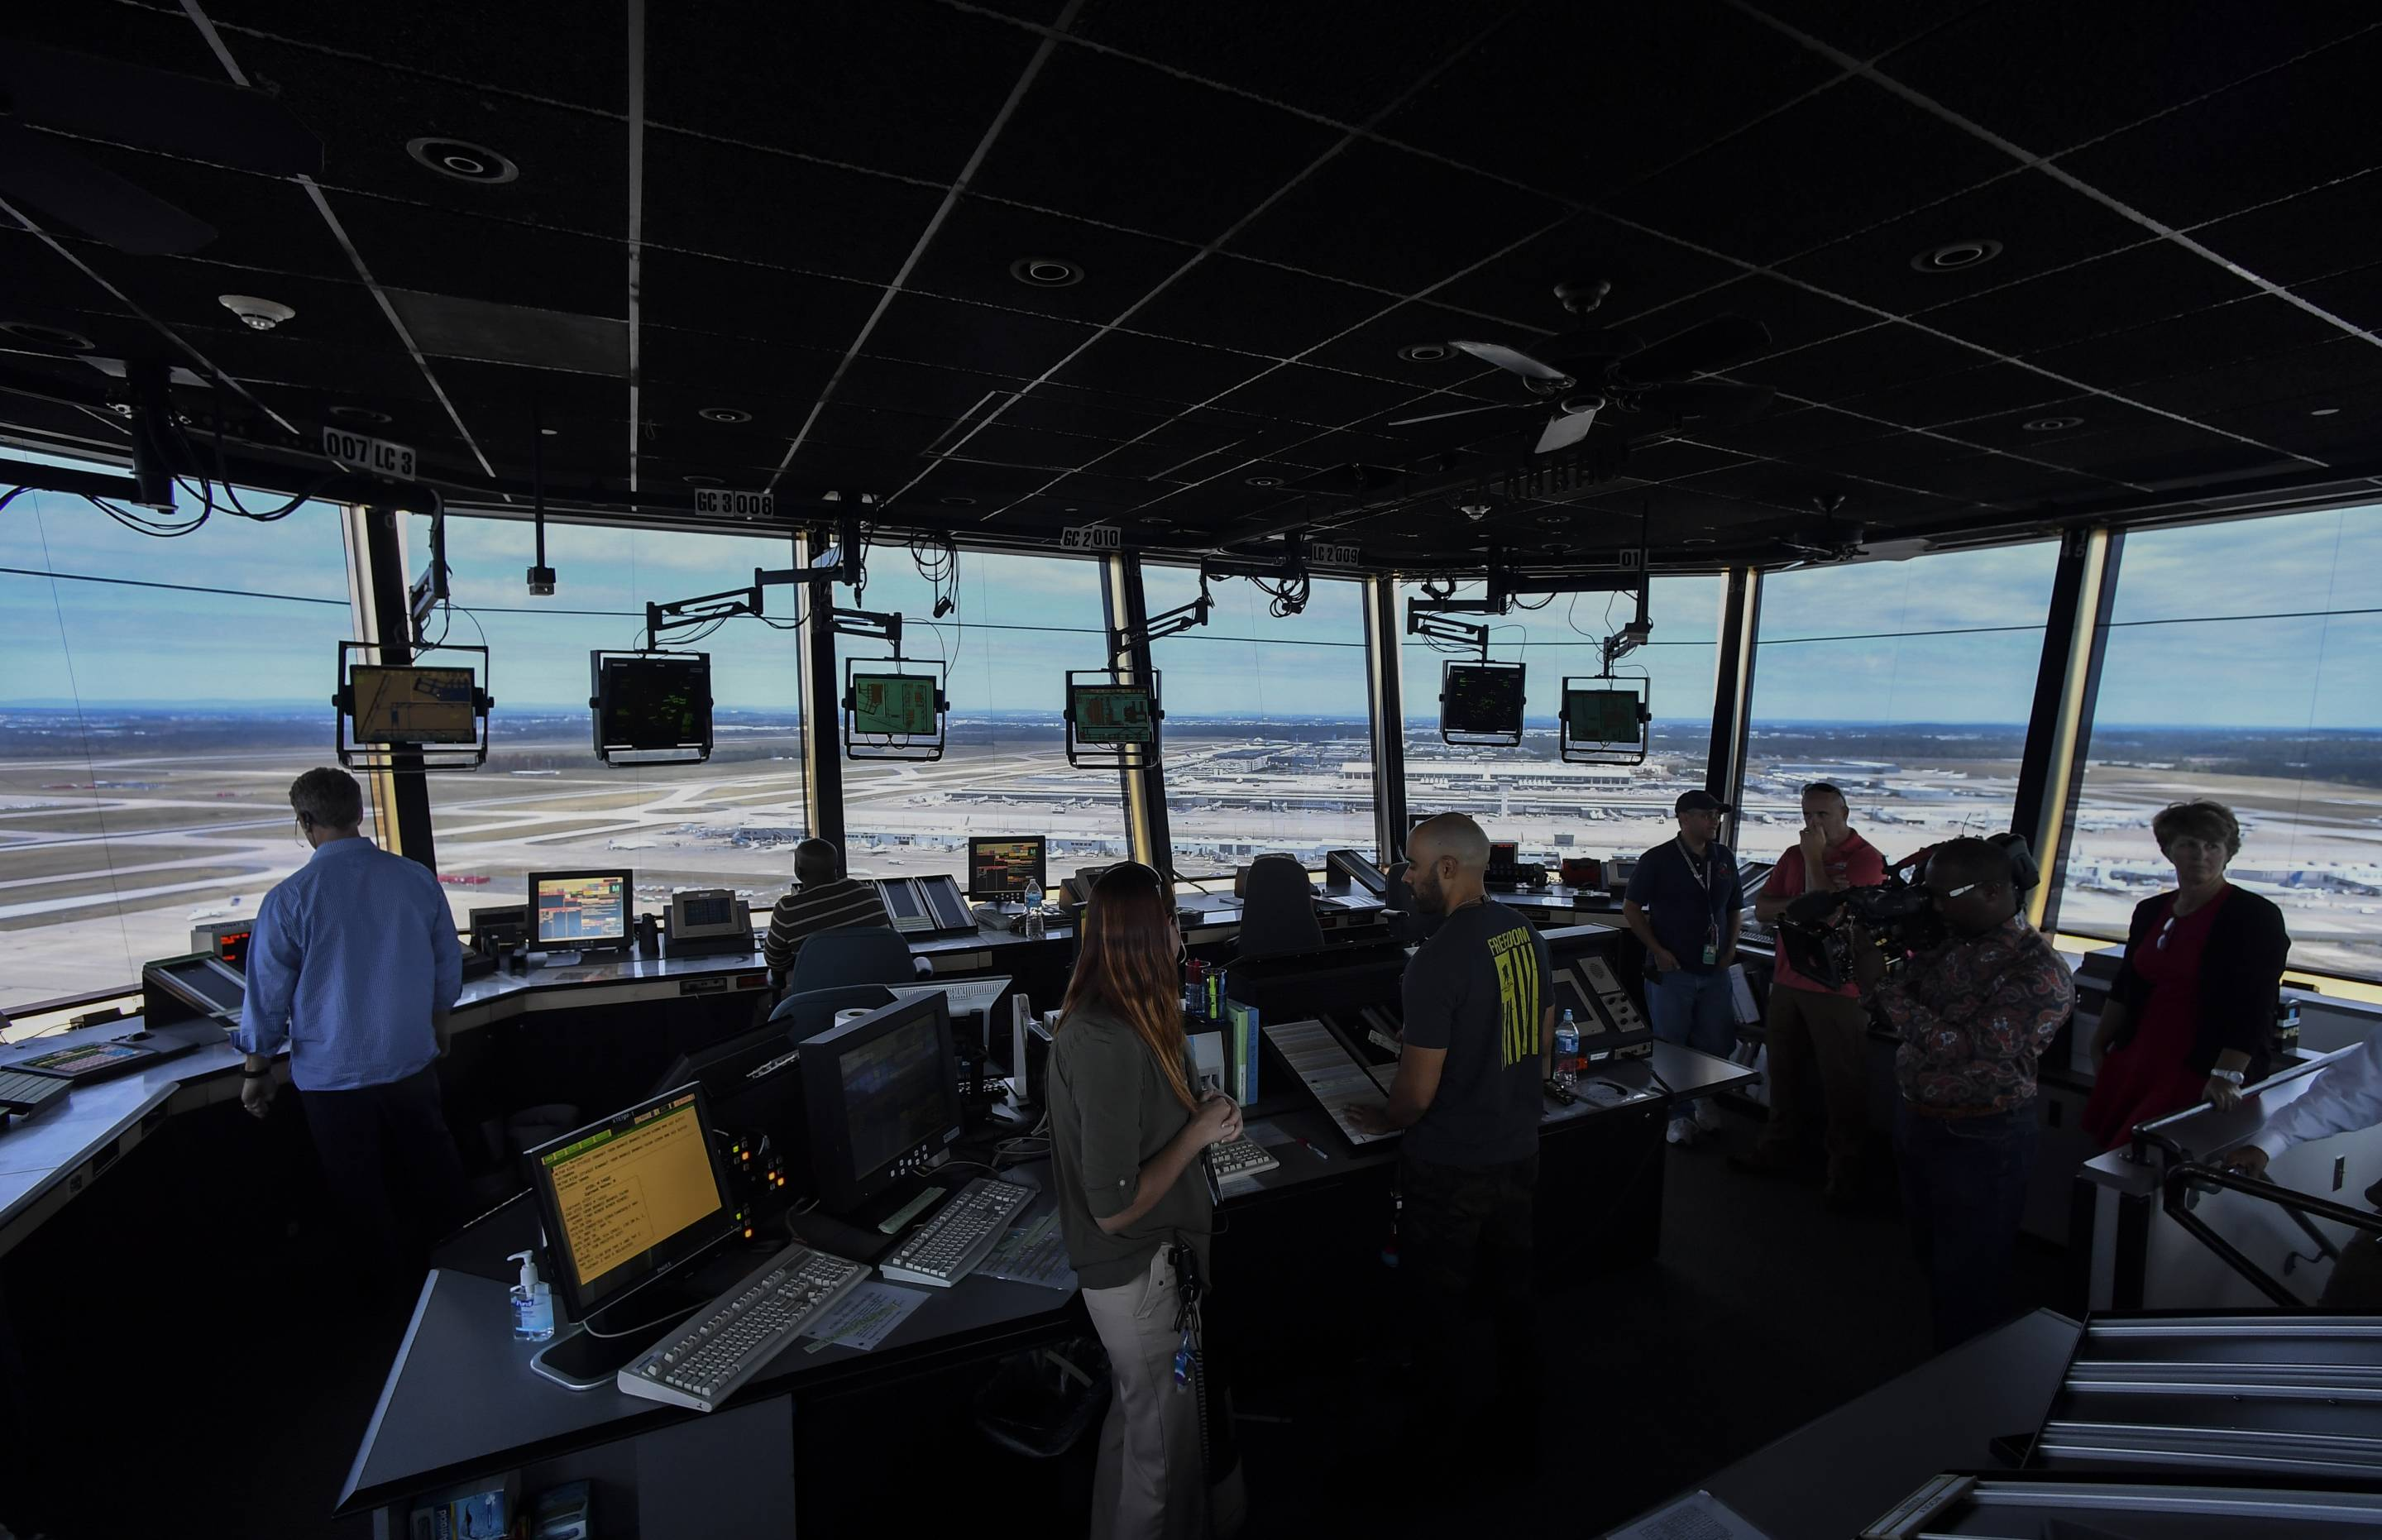 DULLES, VA - SEPTEMBER 27: The scene in the air traffic control